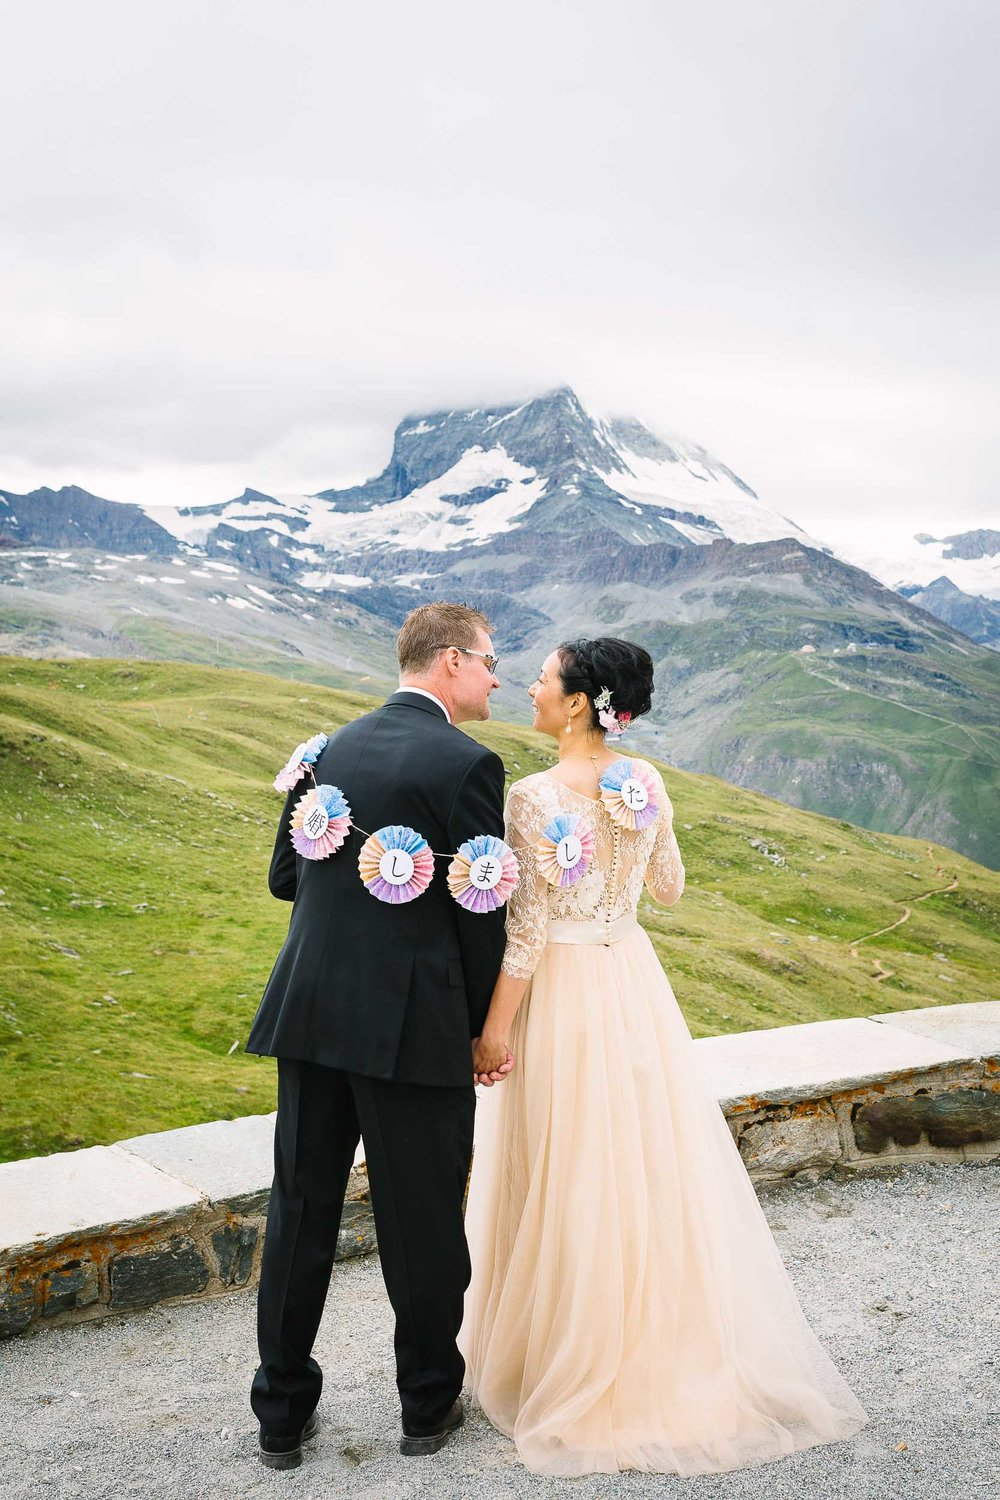 A summer wedding in Zermatt where two families from Japan and the USA met to celebrate.